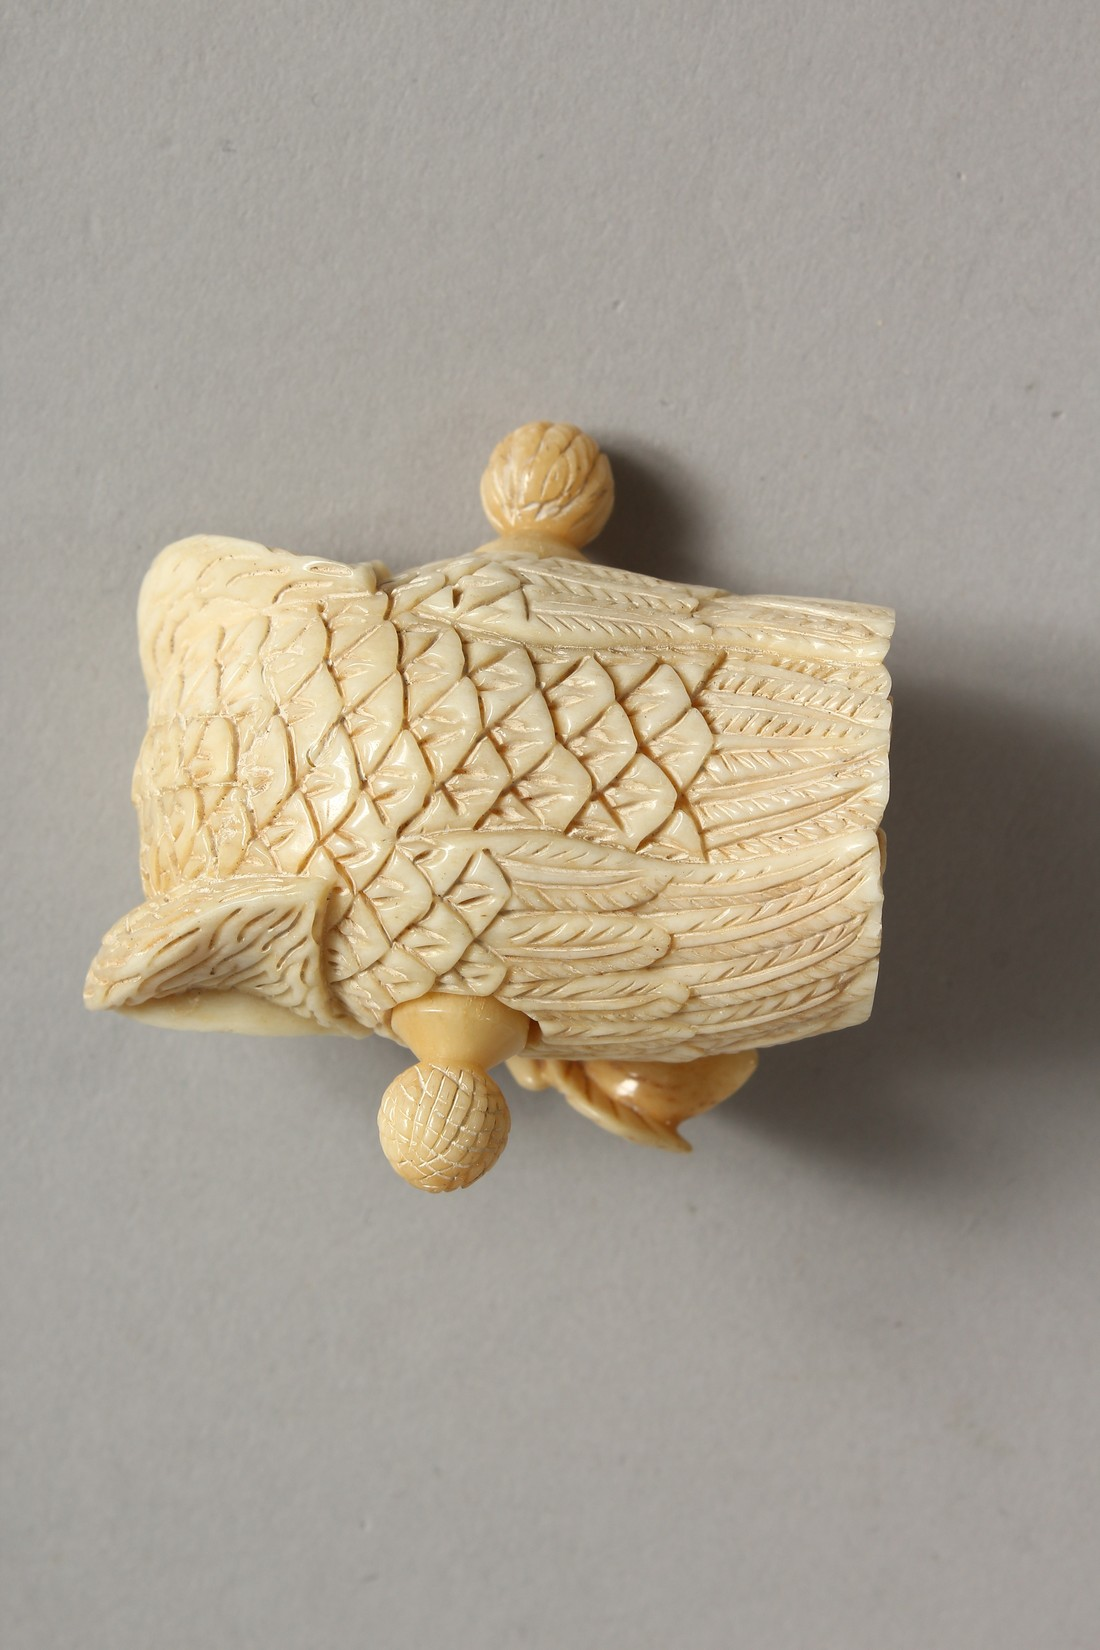 A CARVED BONE OWL TAPE MEASURE - Image 2 of 3